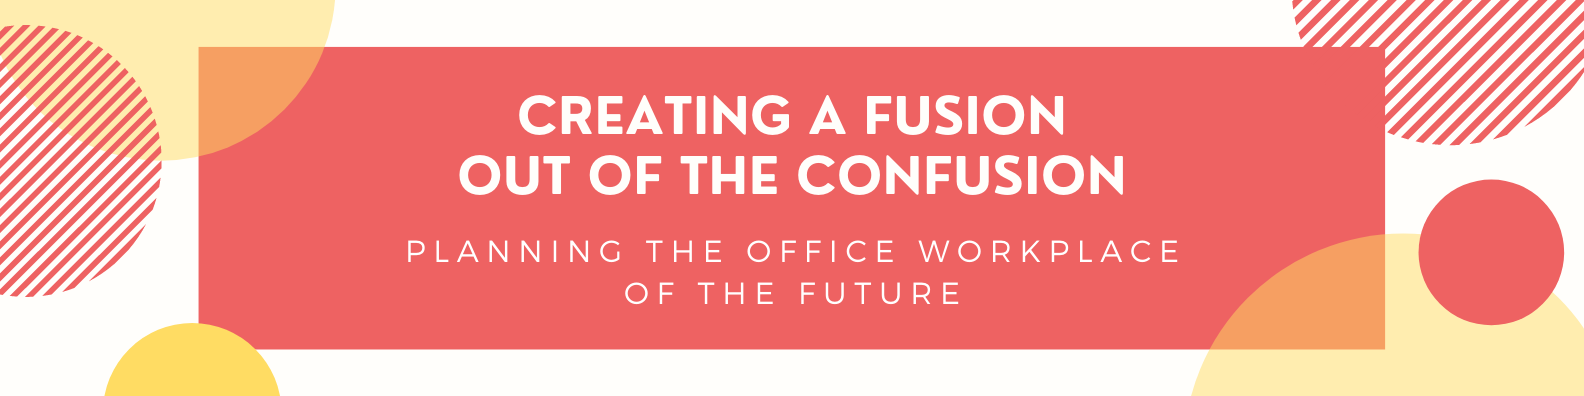 Creating a Fusion out of the Confusion: Planning the Office Workplace of the Future